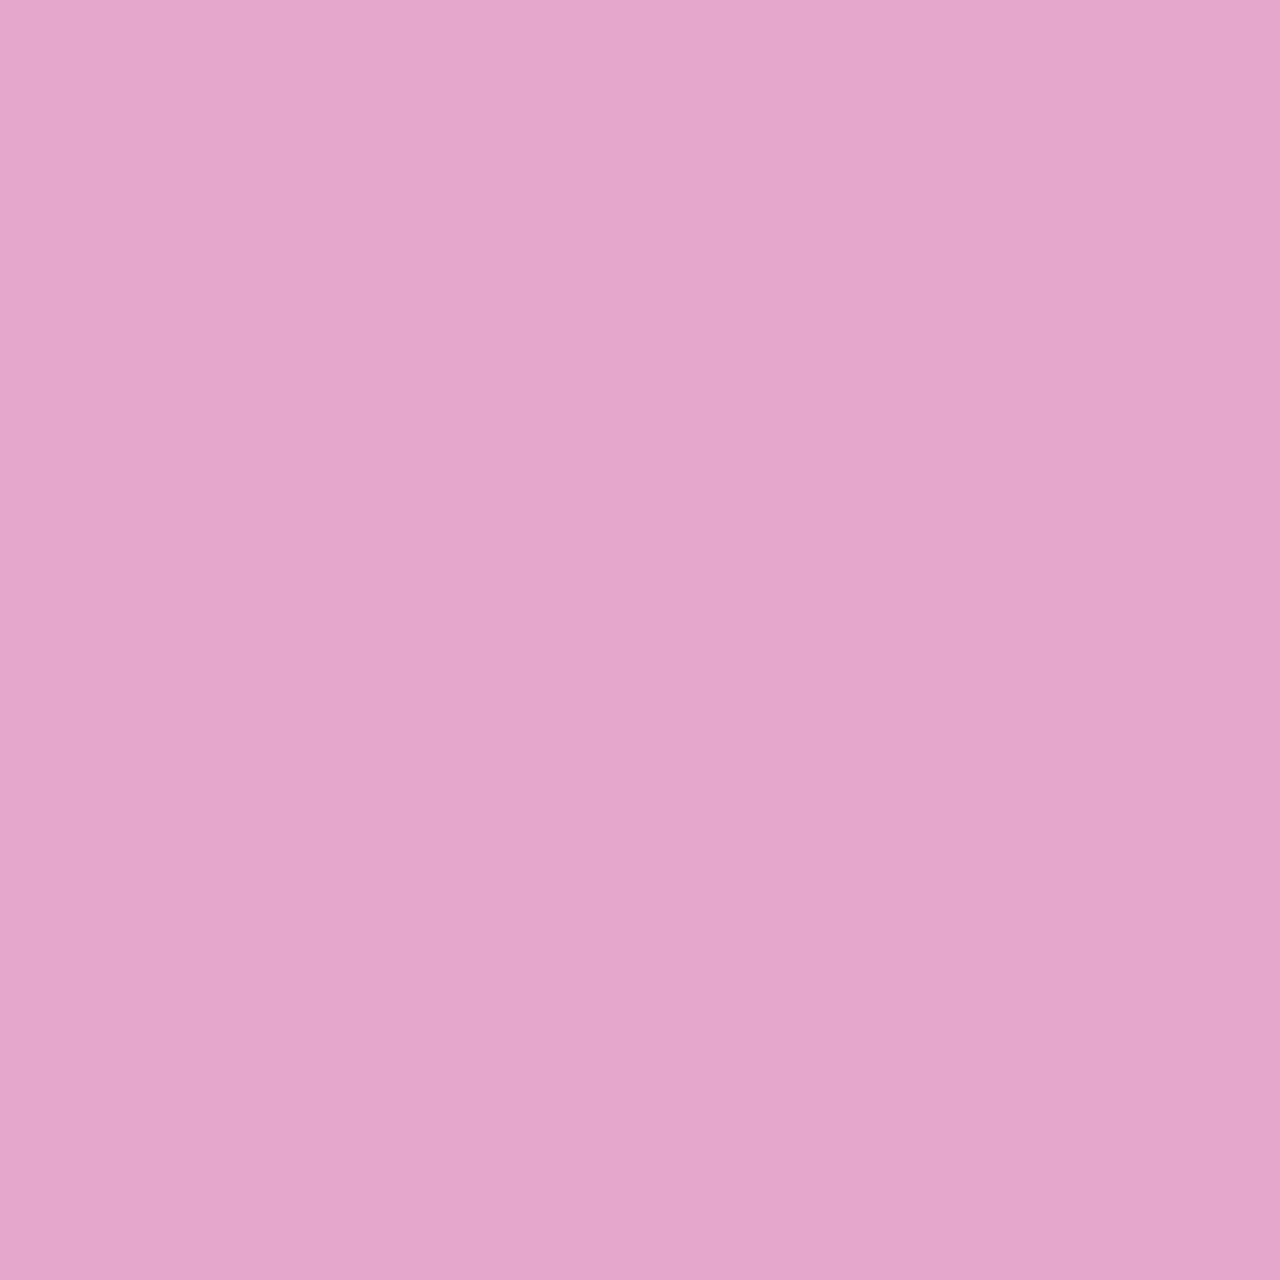 #0337 Rosco Gels Roscolux True Pink, 20x24""